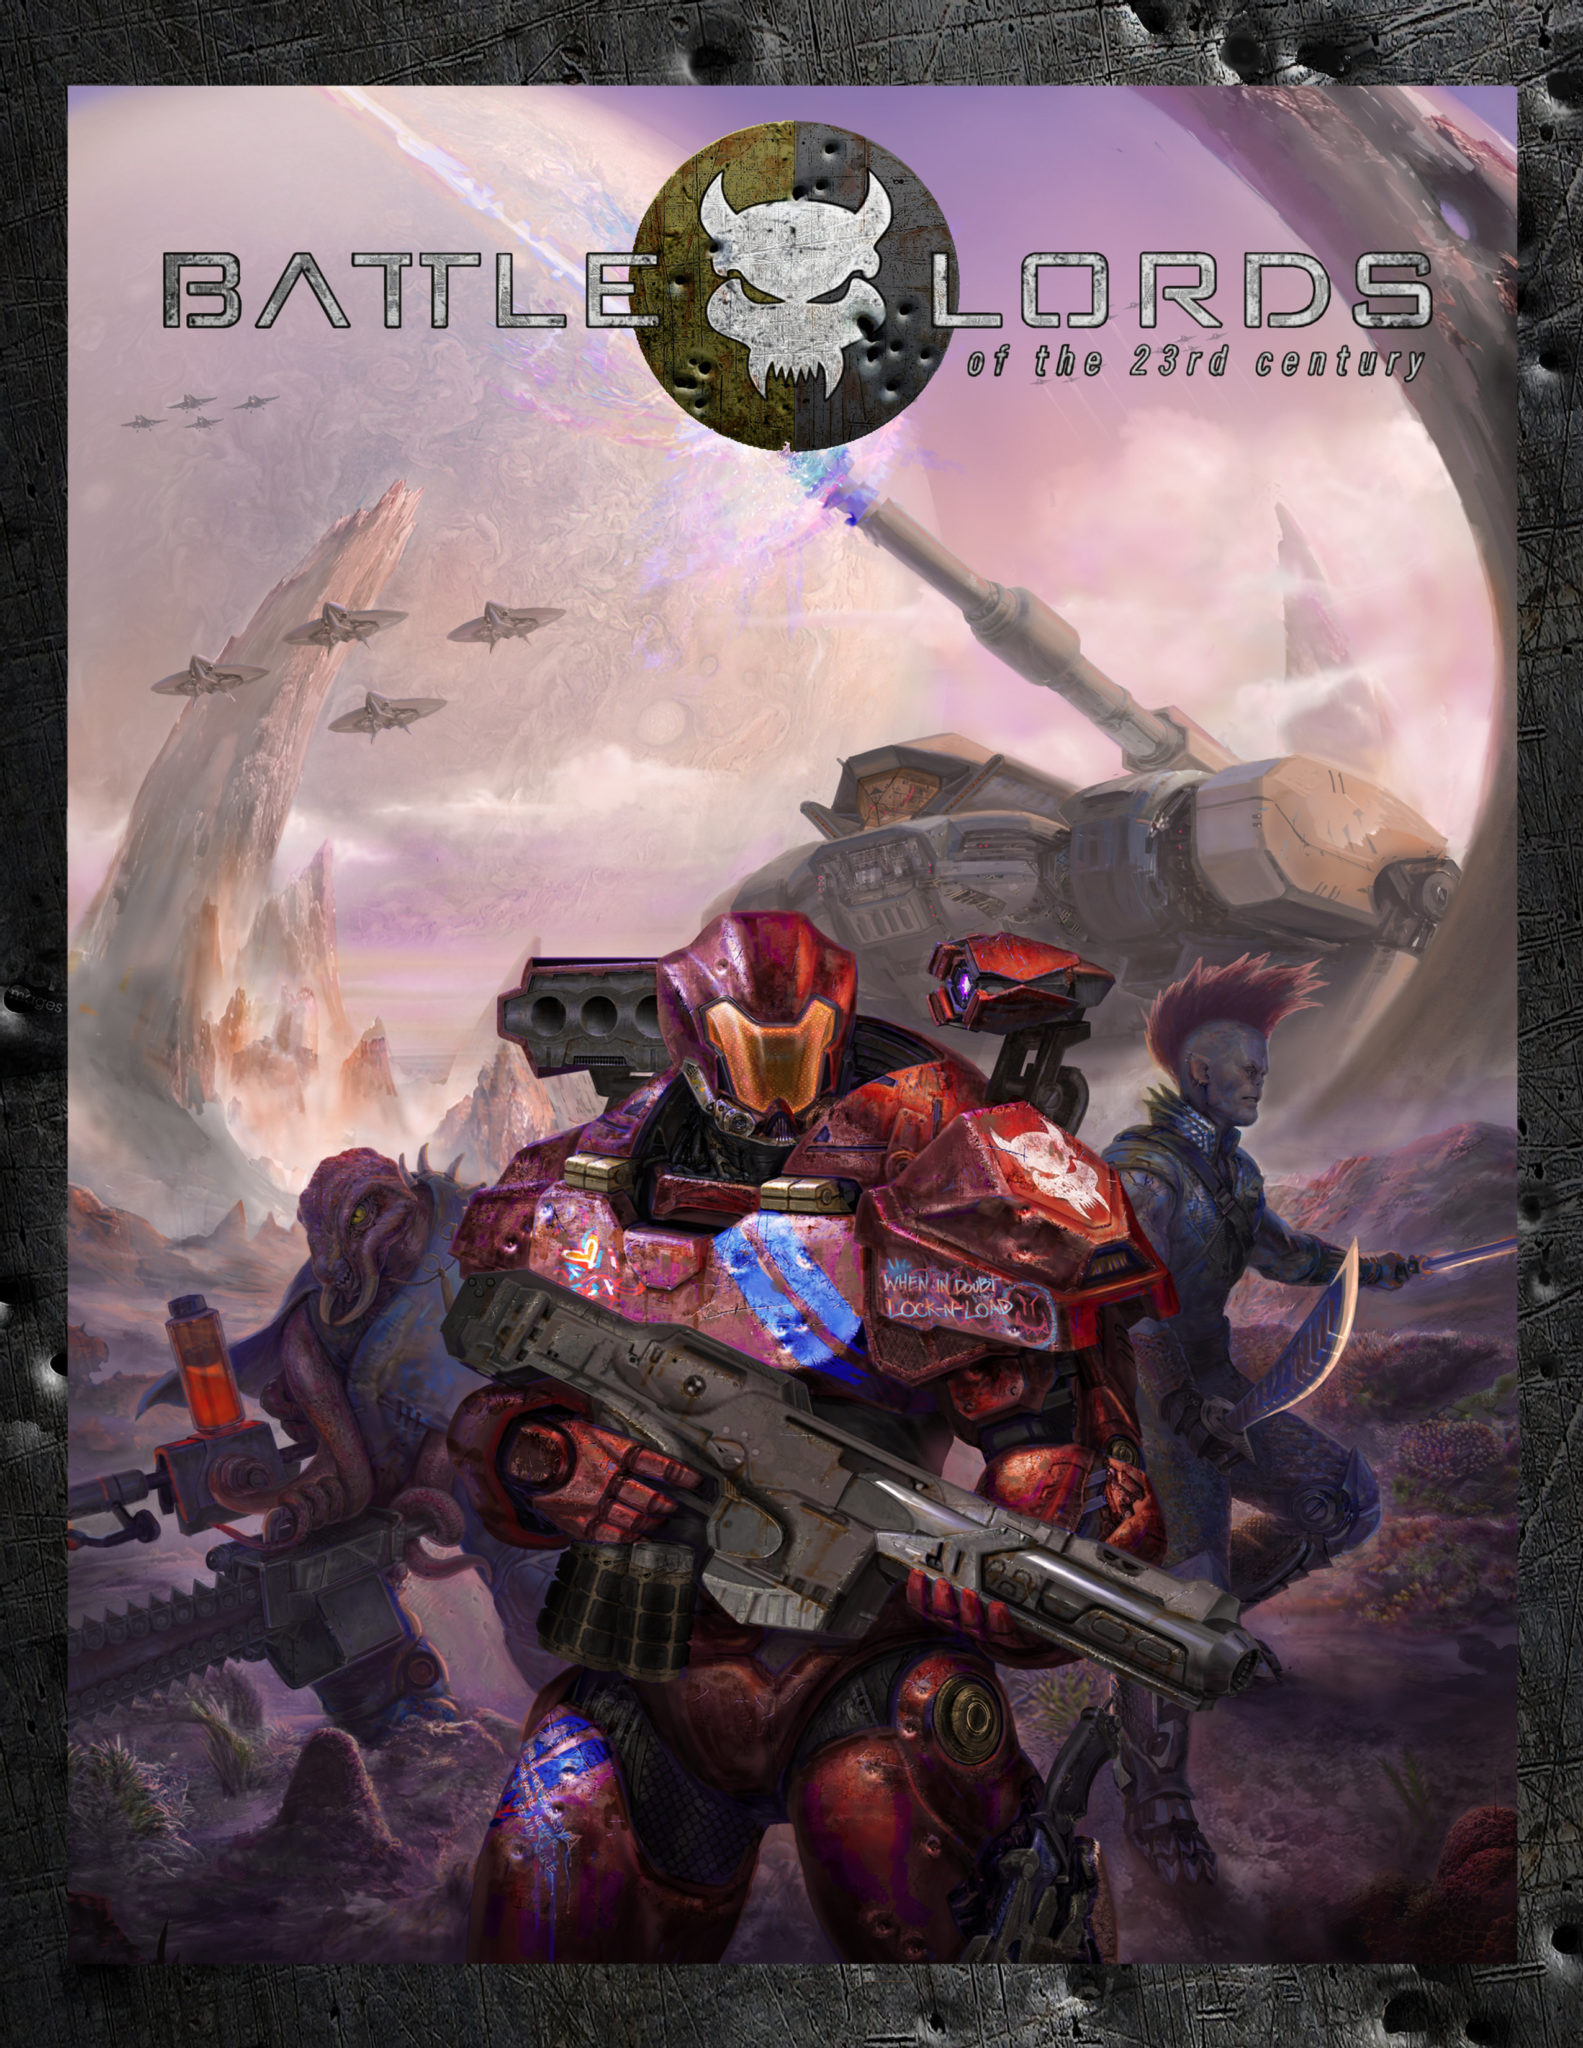 Cover image of Battlelords of the 23rd century. A heavily armed and armoured team of humanoids make their way through an alien war scene, with aircraft overhead and gigantic tanks behind them.